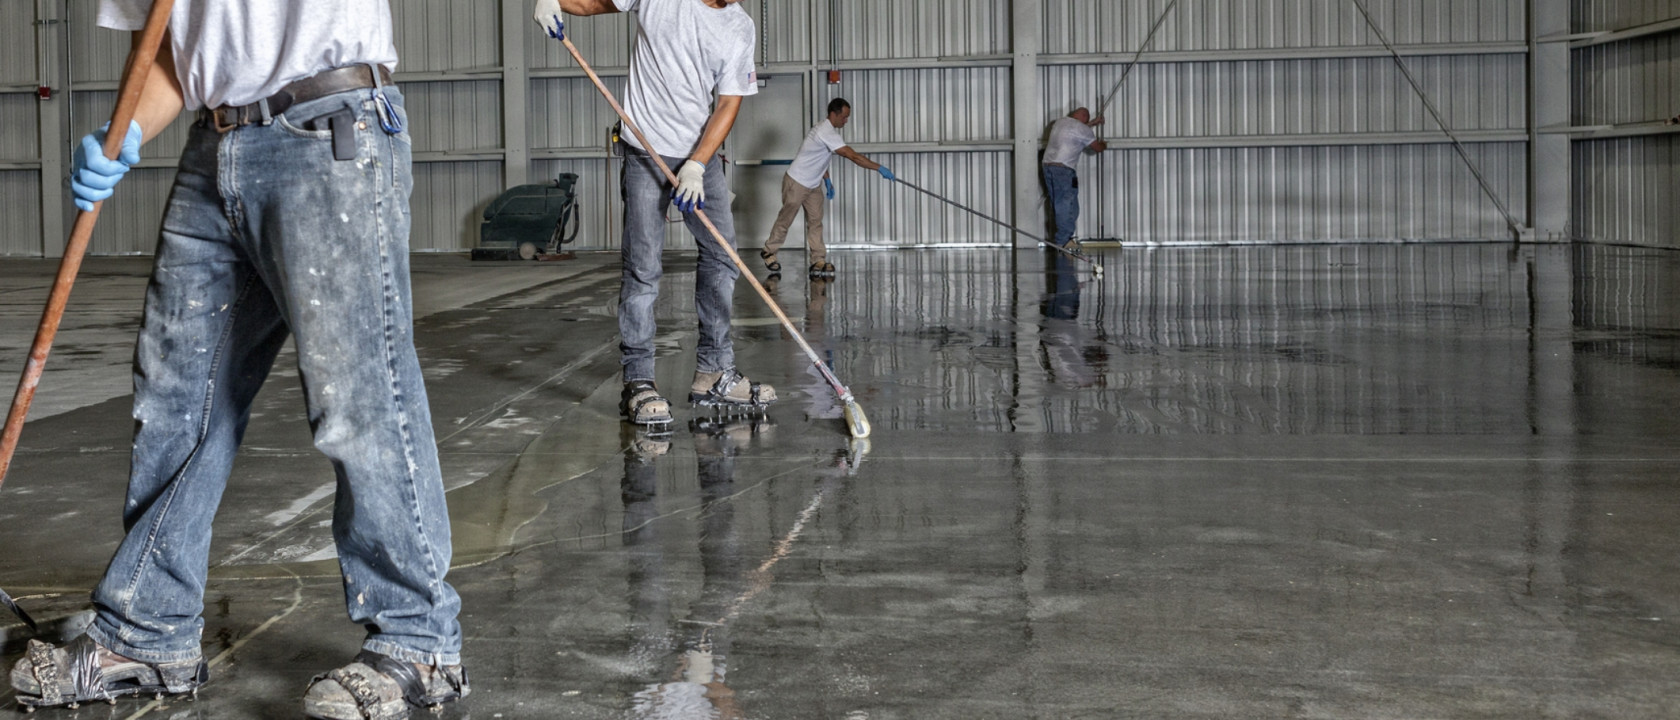 Vapor-Tek 440 Concrete Sealer marketing image